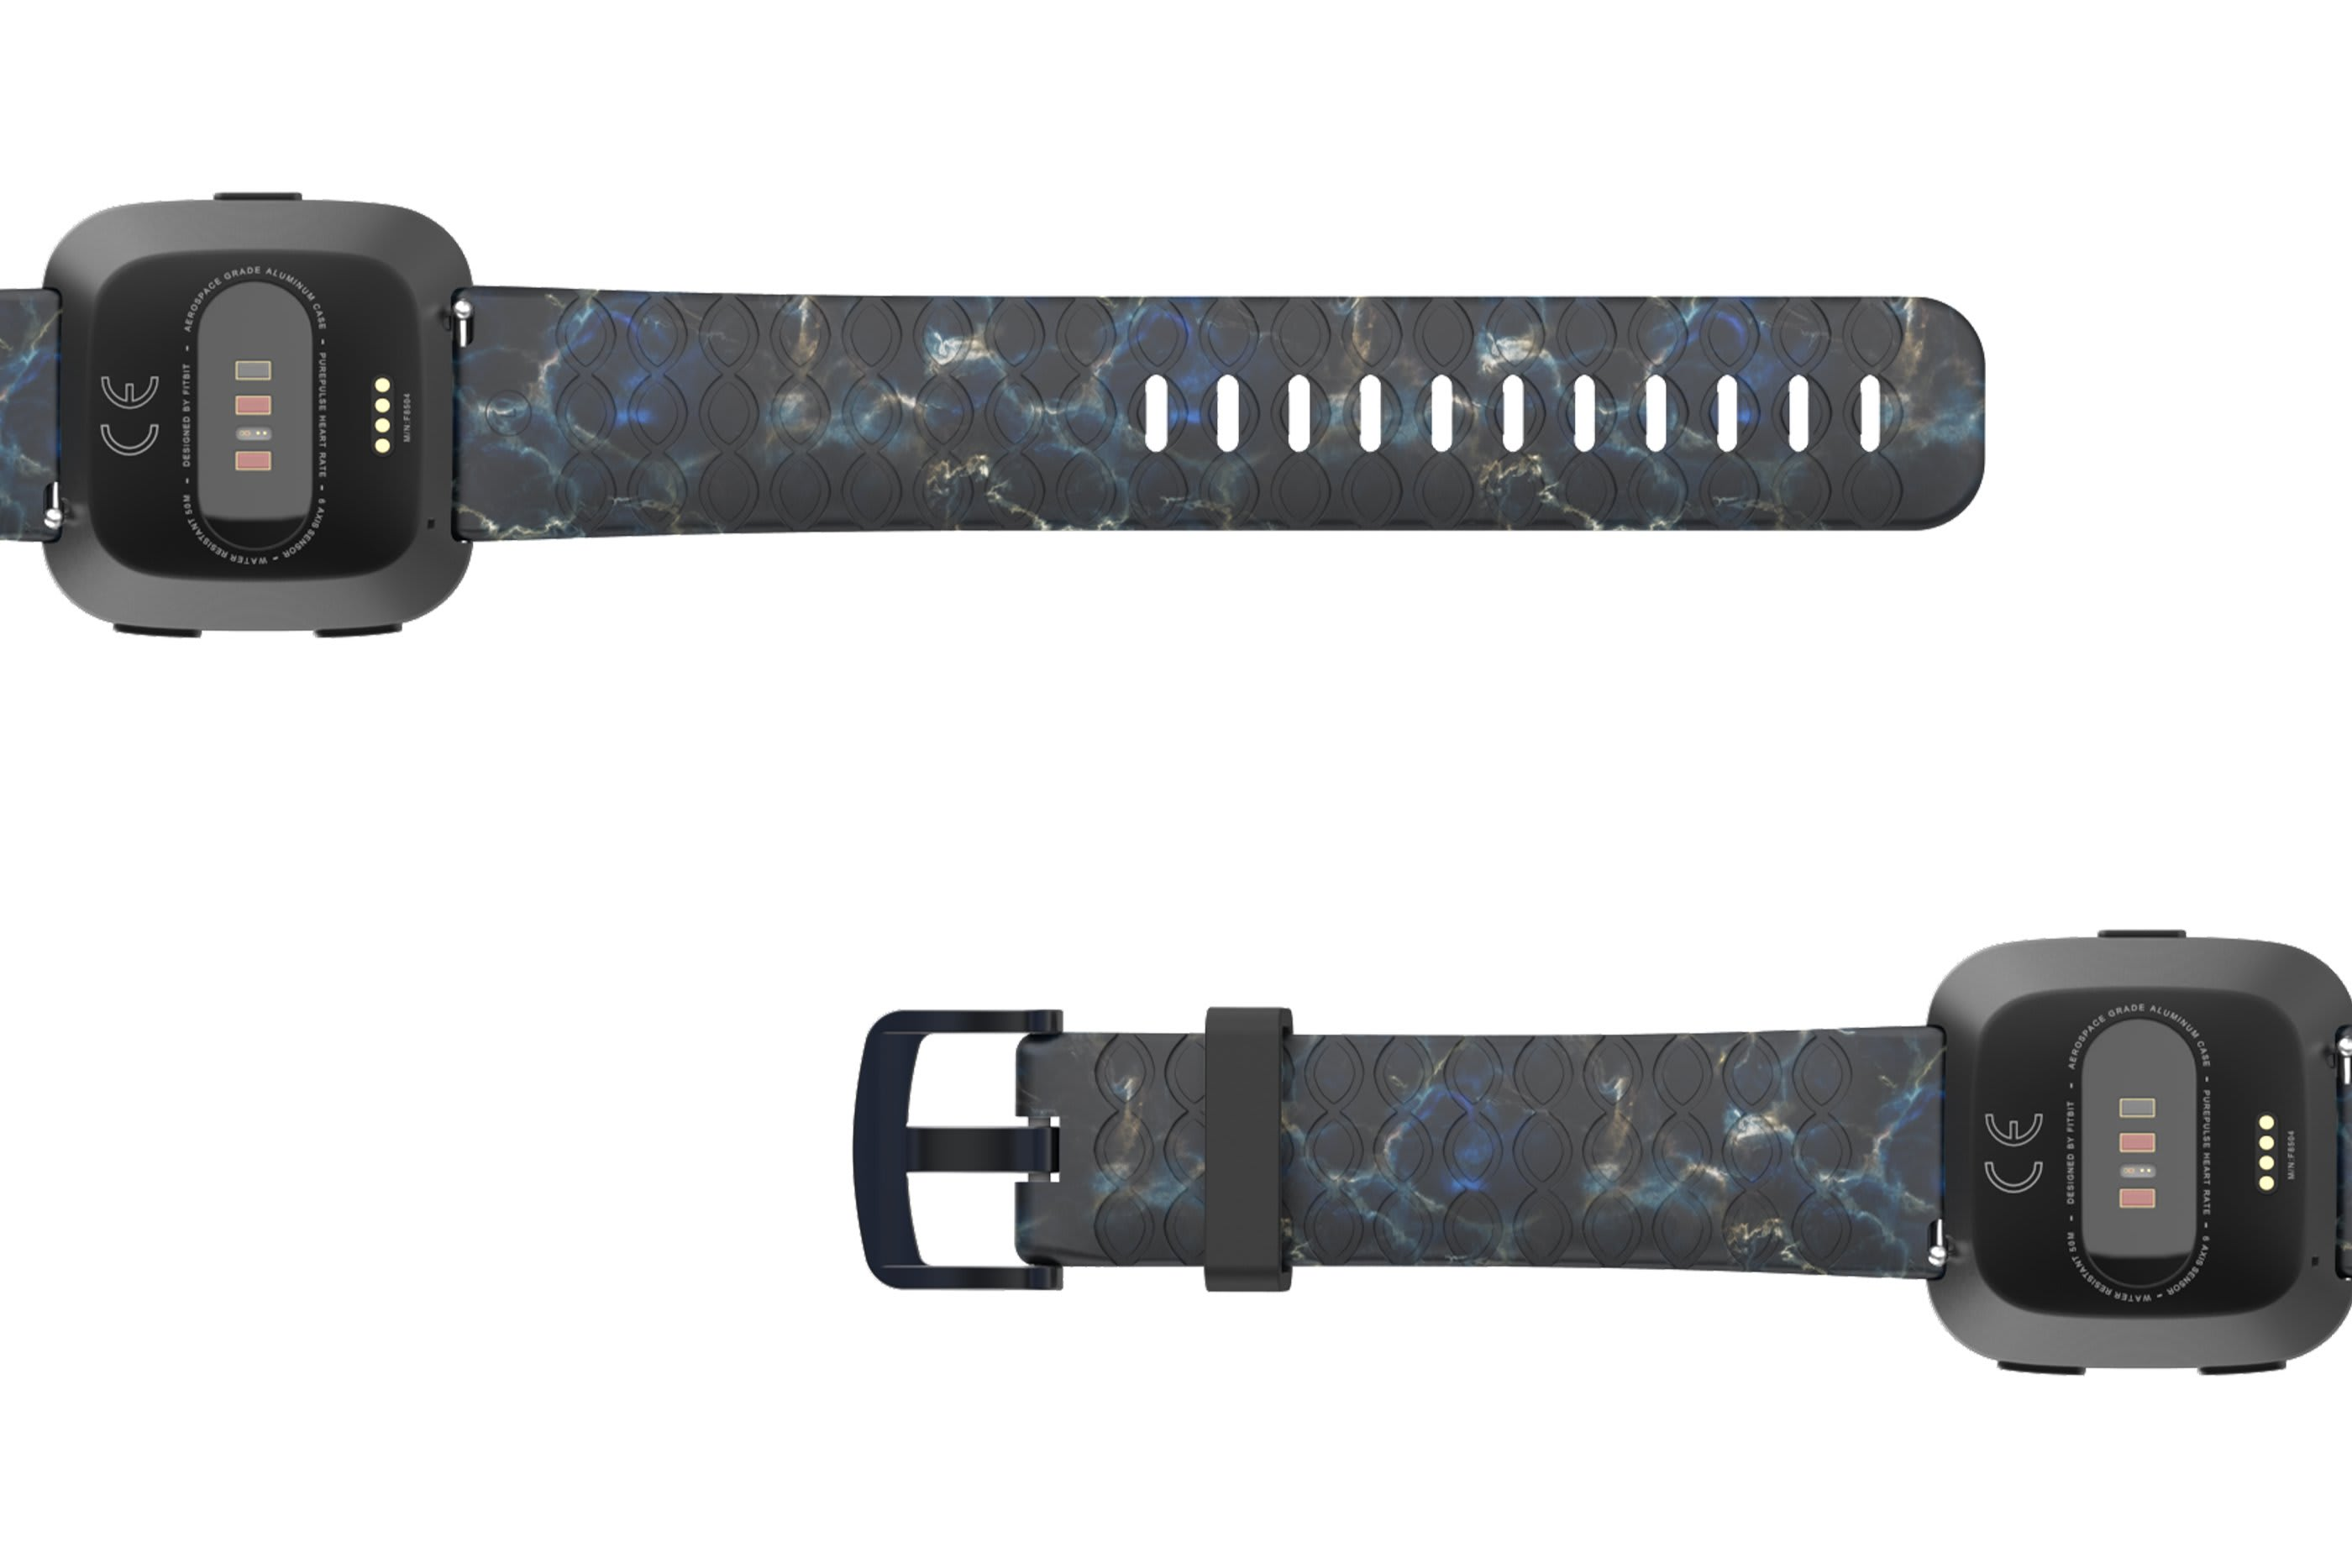 Nomad Rapids Fitbit Versa   watch band with gray hardware viewed bottom up